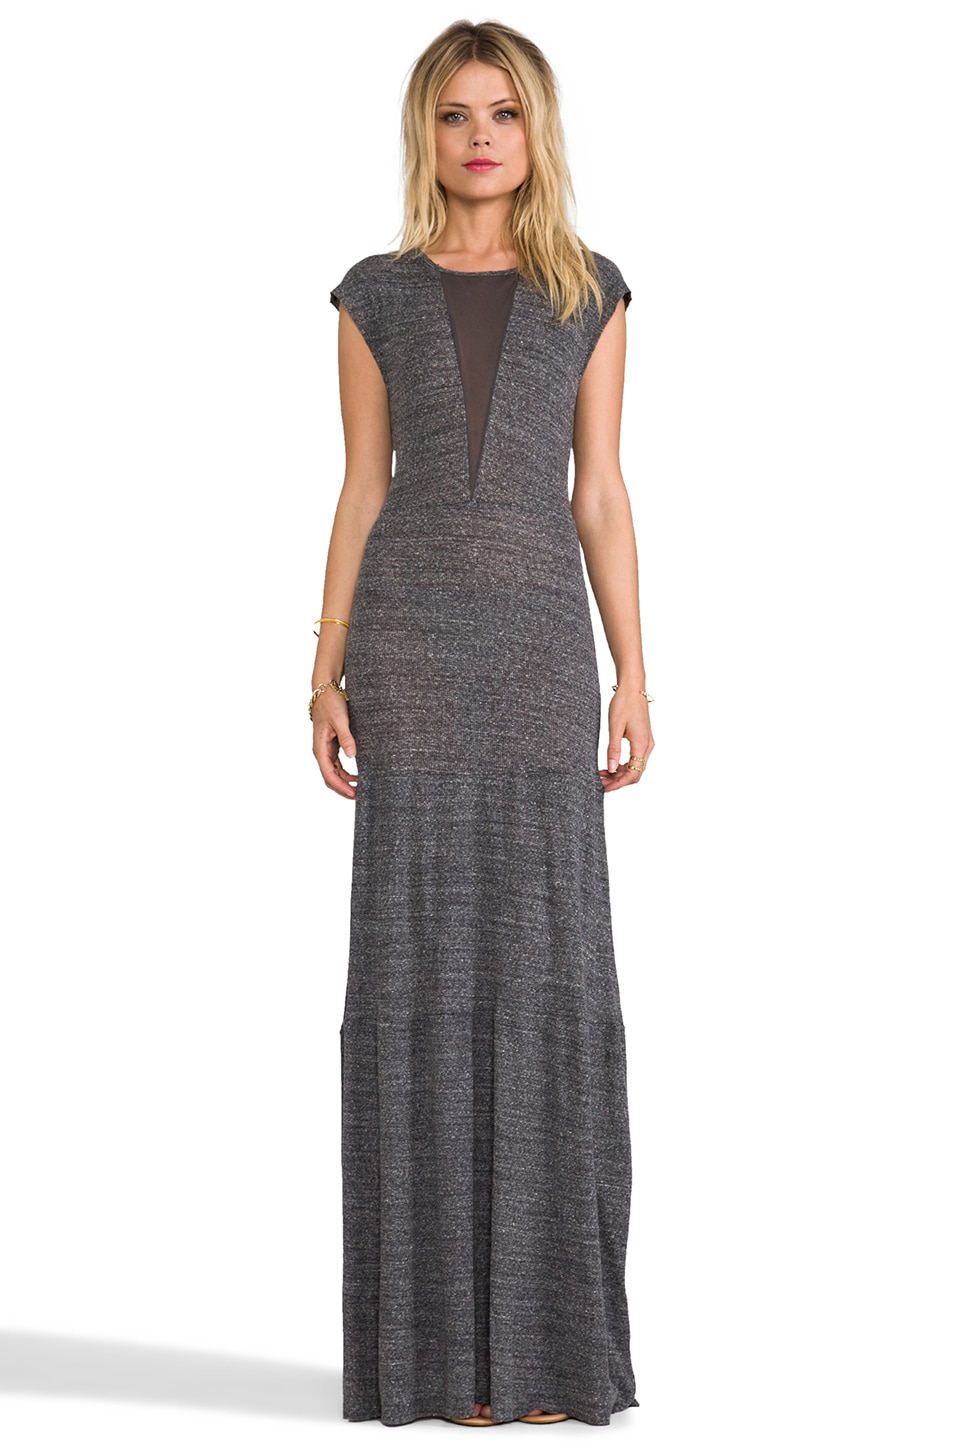 Nightcap Caletta Maxi Dress in Charcoal